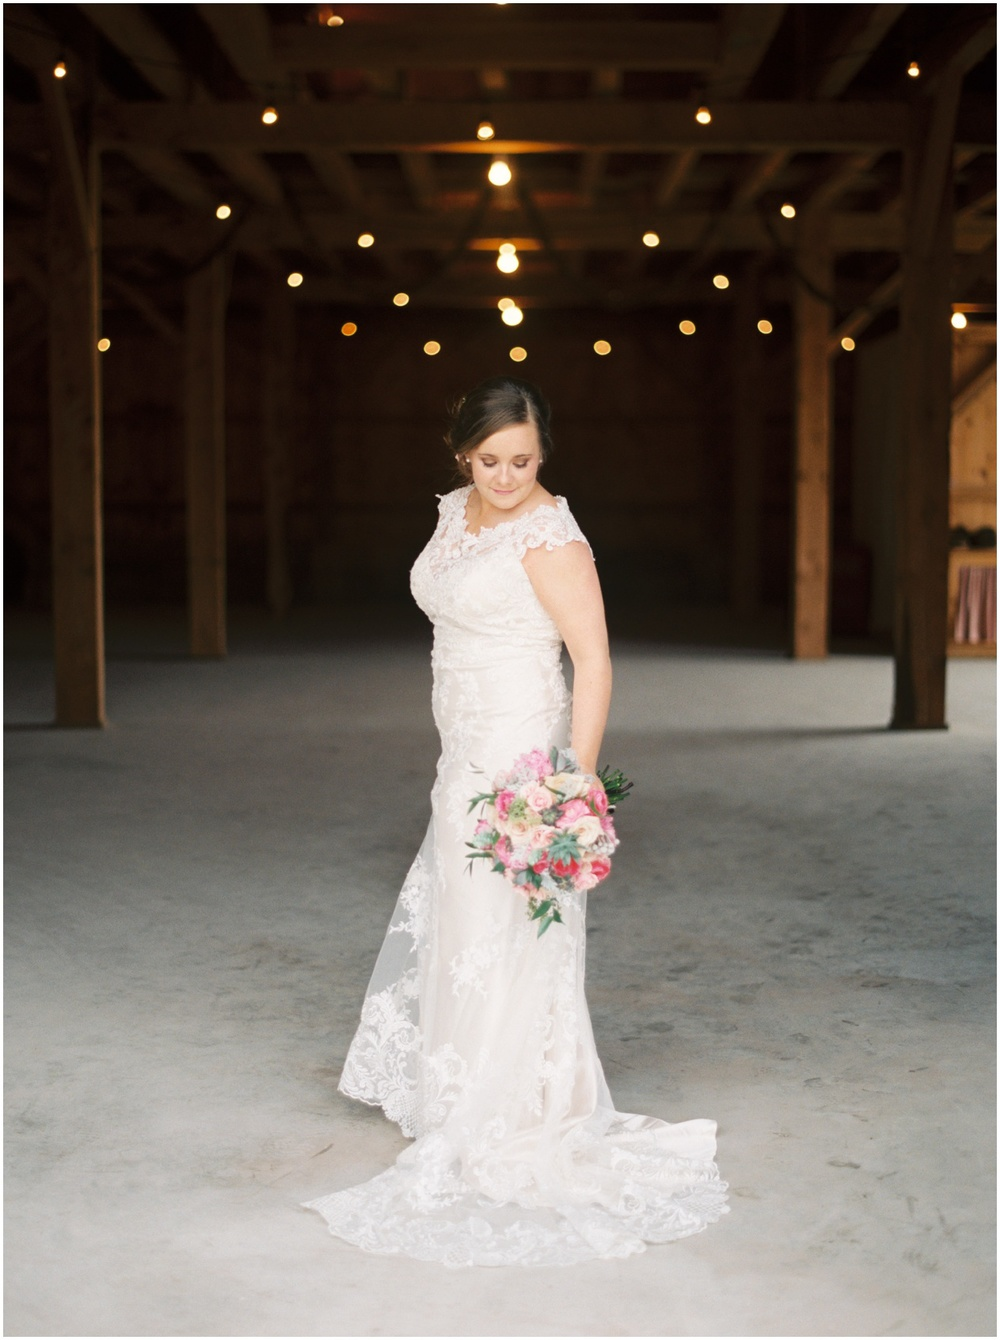 Sarah Best Photography - Claire's Bridals - The Amish Barn at Edge-1_STP.jpg